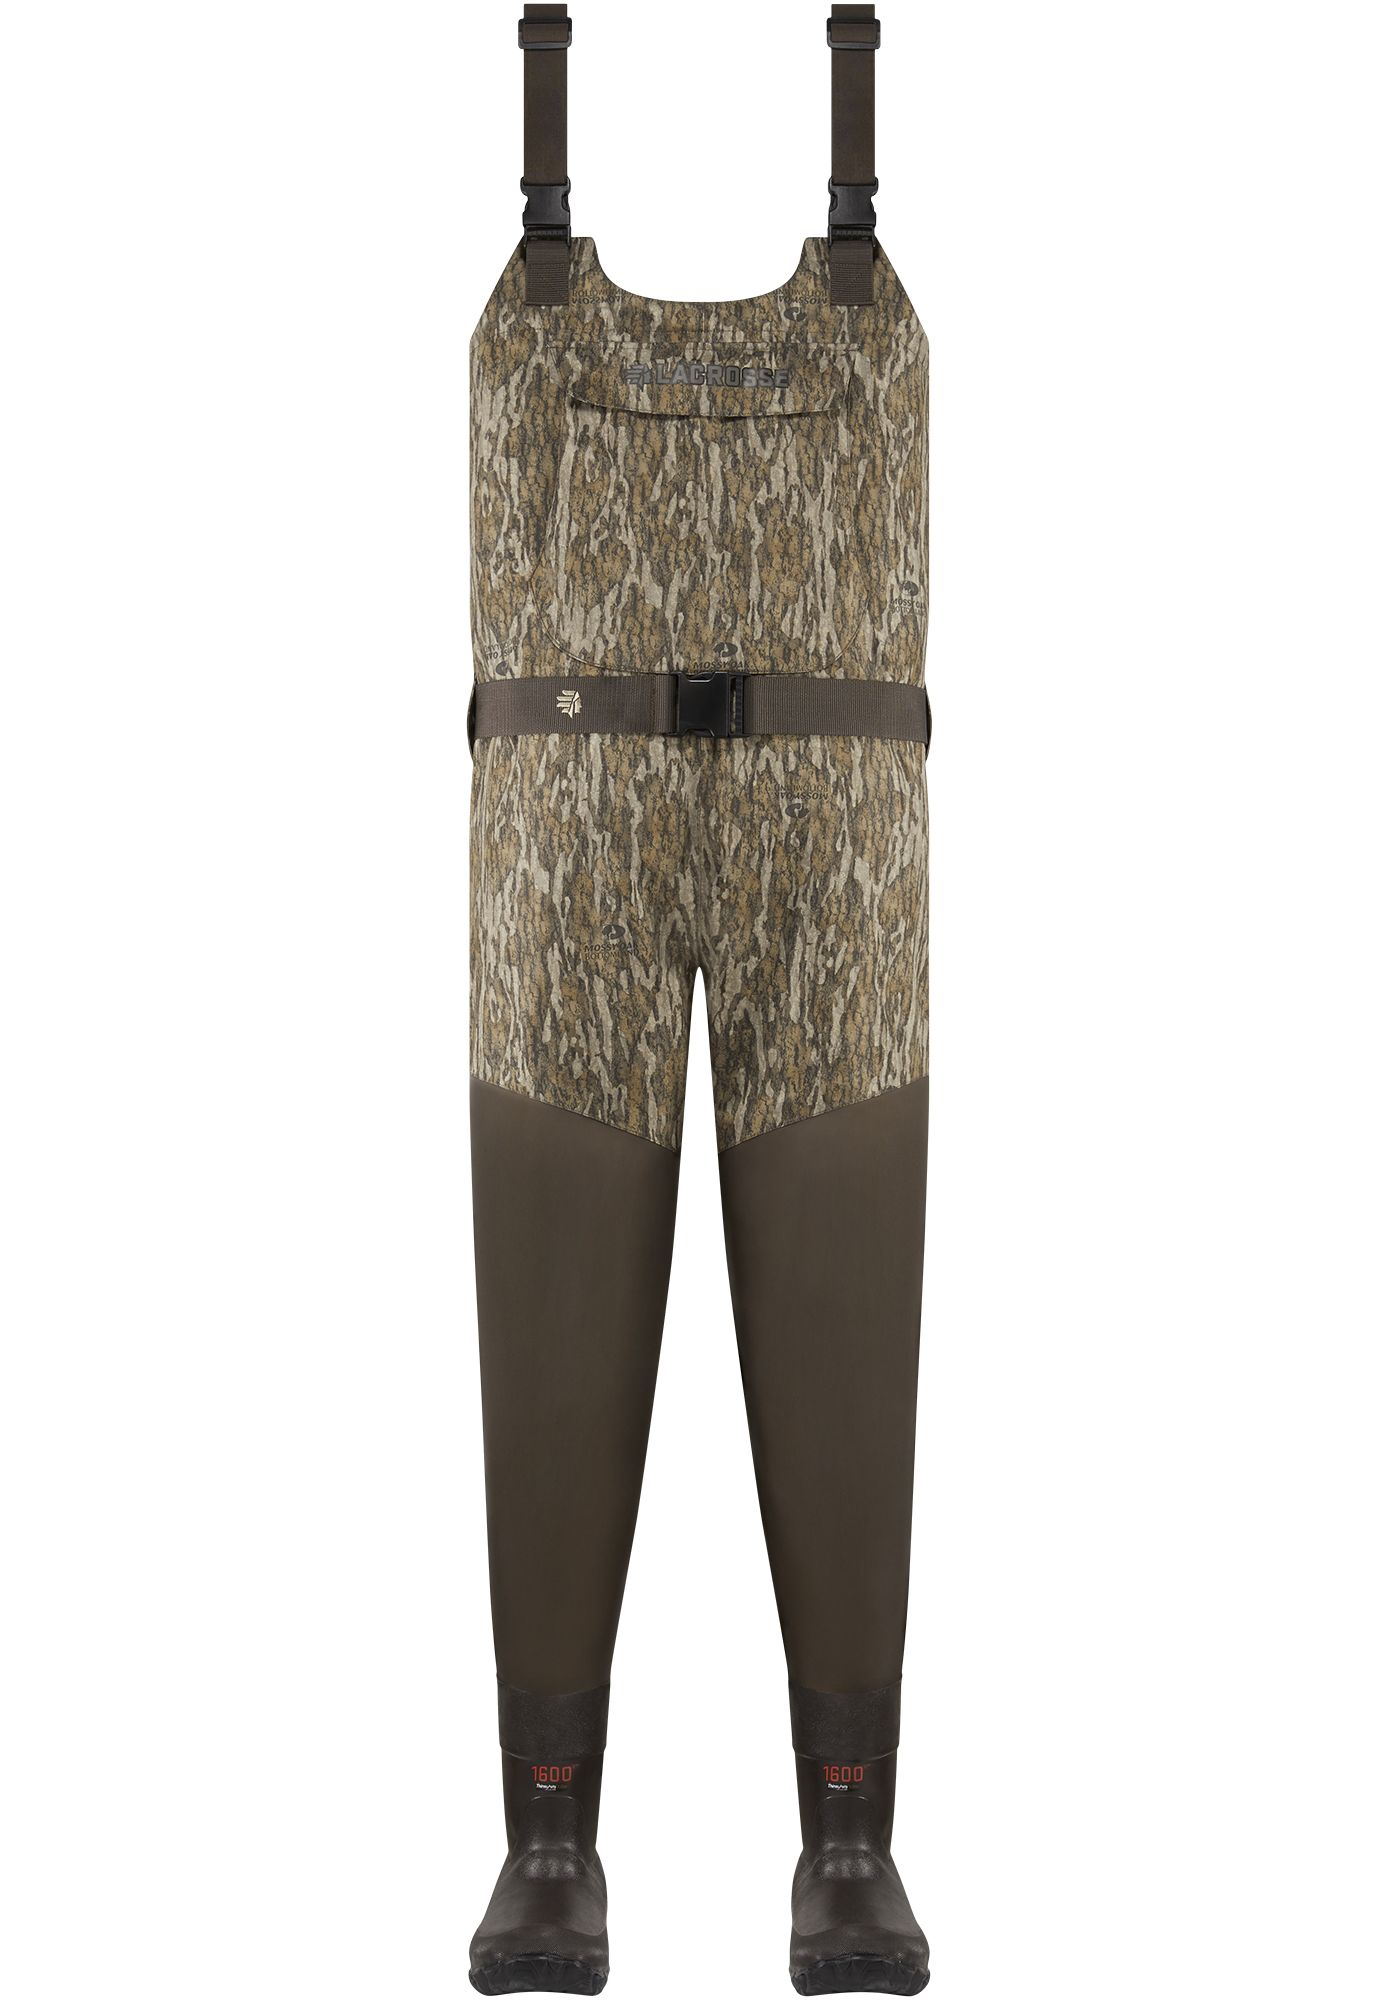 LaCrosse Men's Wetlands Insulated Chest Waders